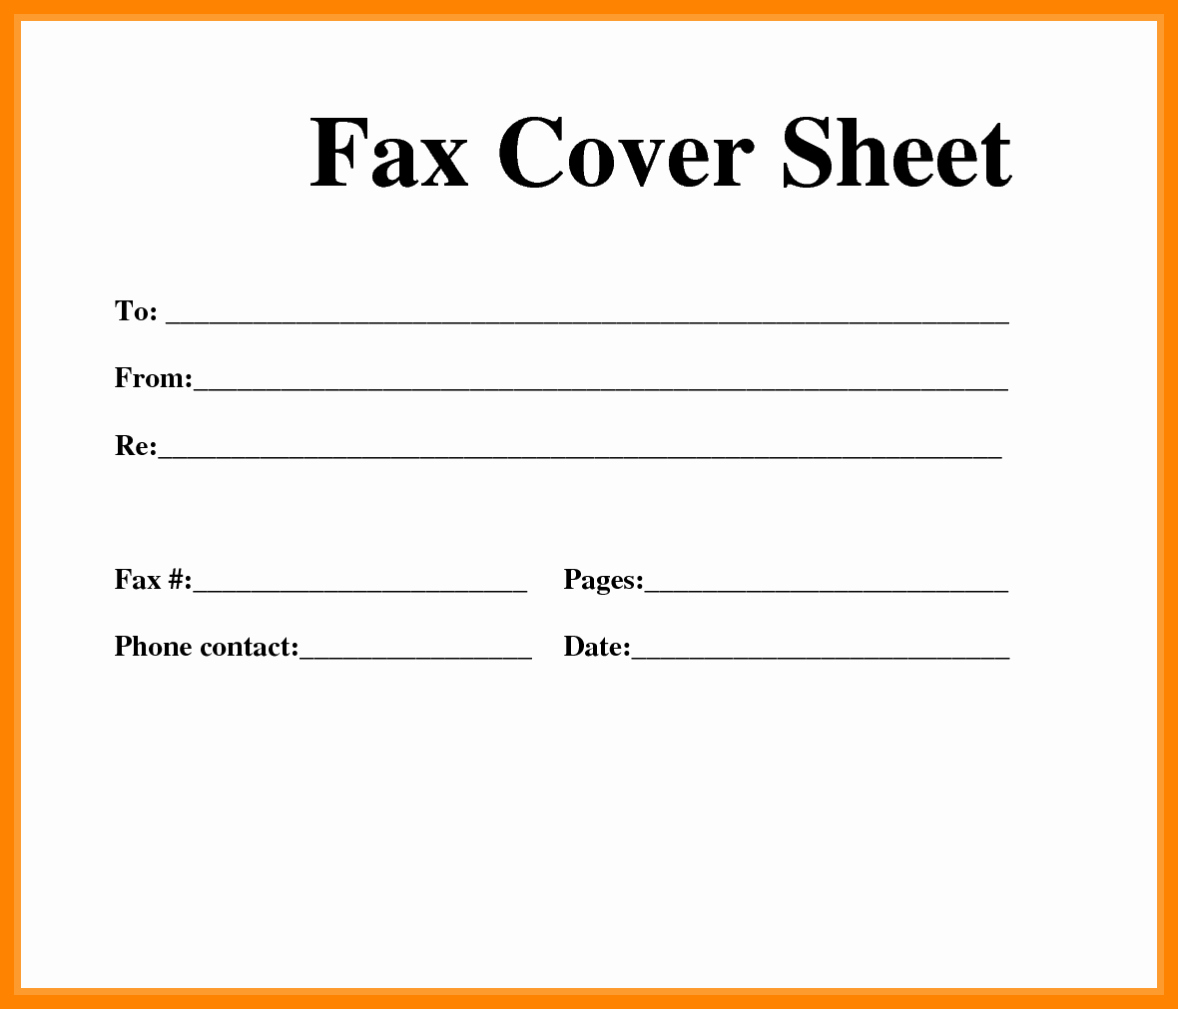 Free Fax Cover Sheets Download Beautiful 9 Free Printable Fax Cover Sheets Templates